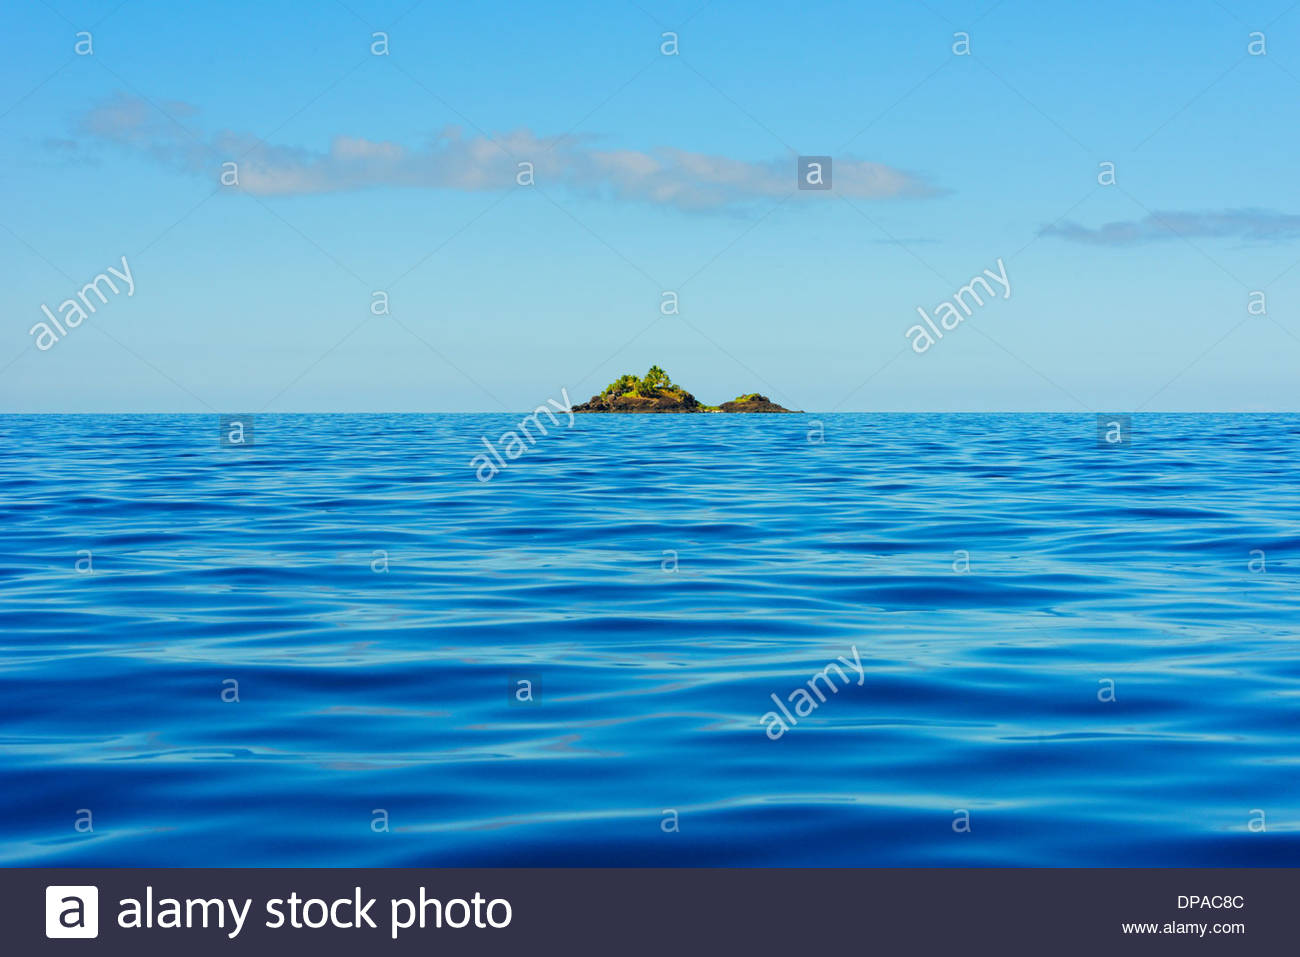 Atoll, Yasawa island group, Fiji, South Pacific - Stock Image